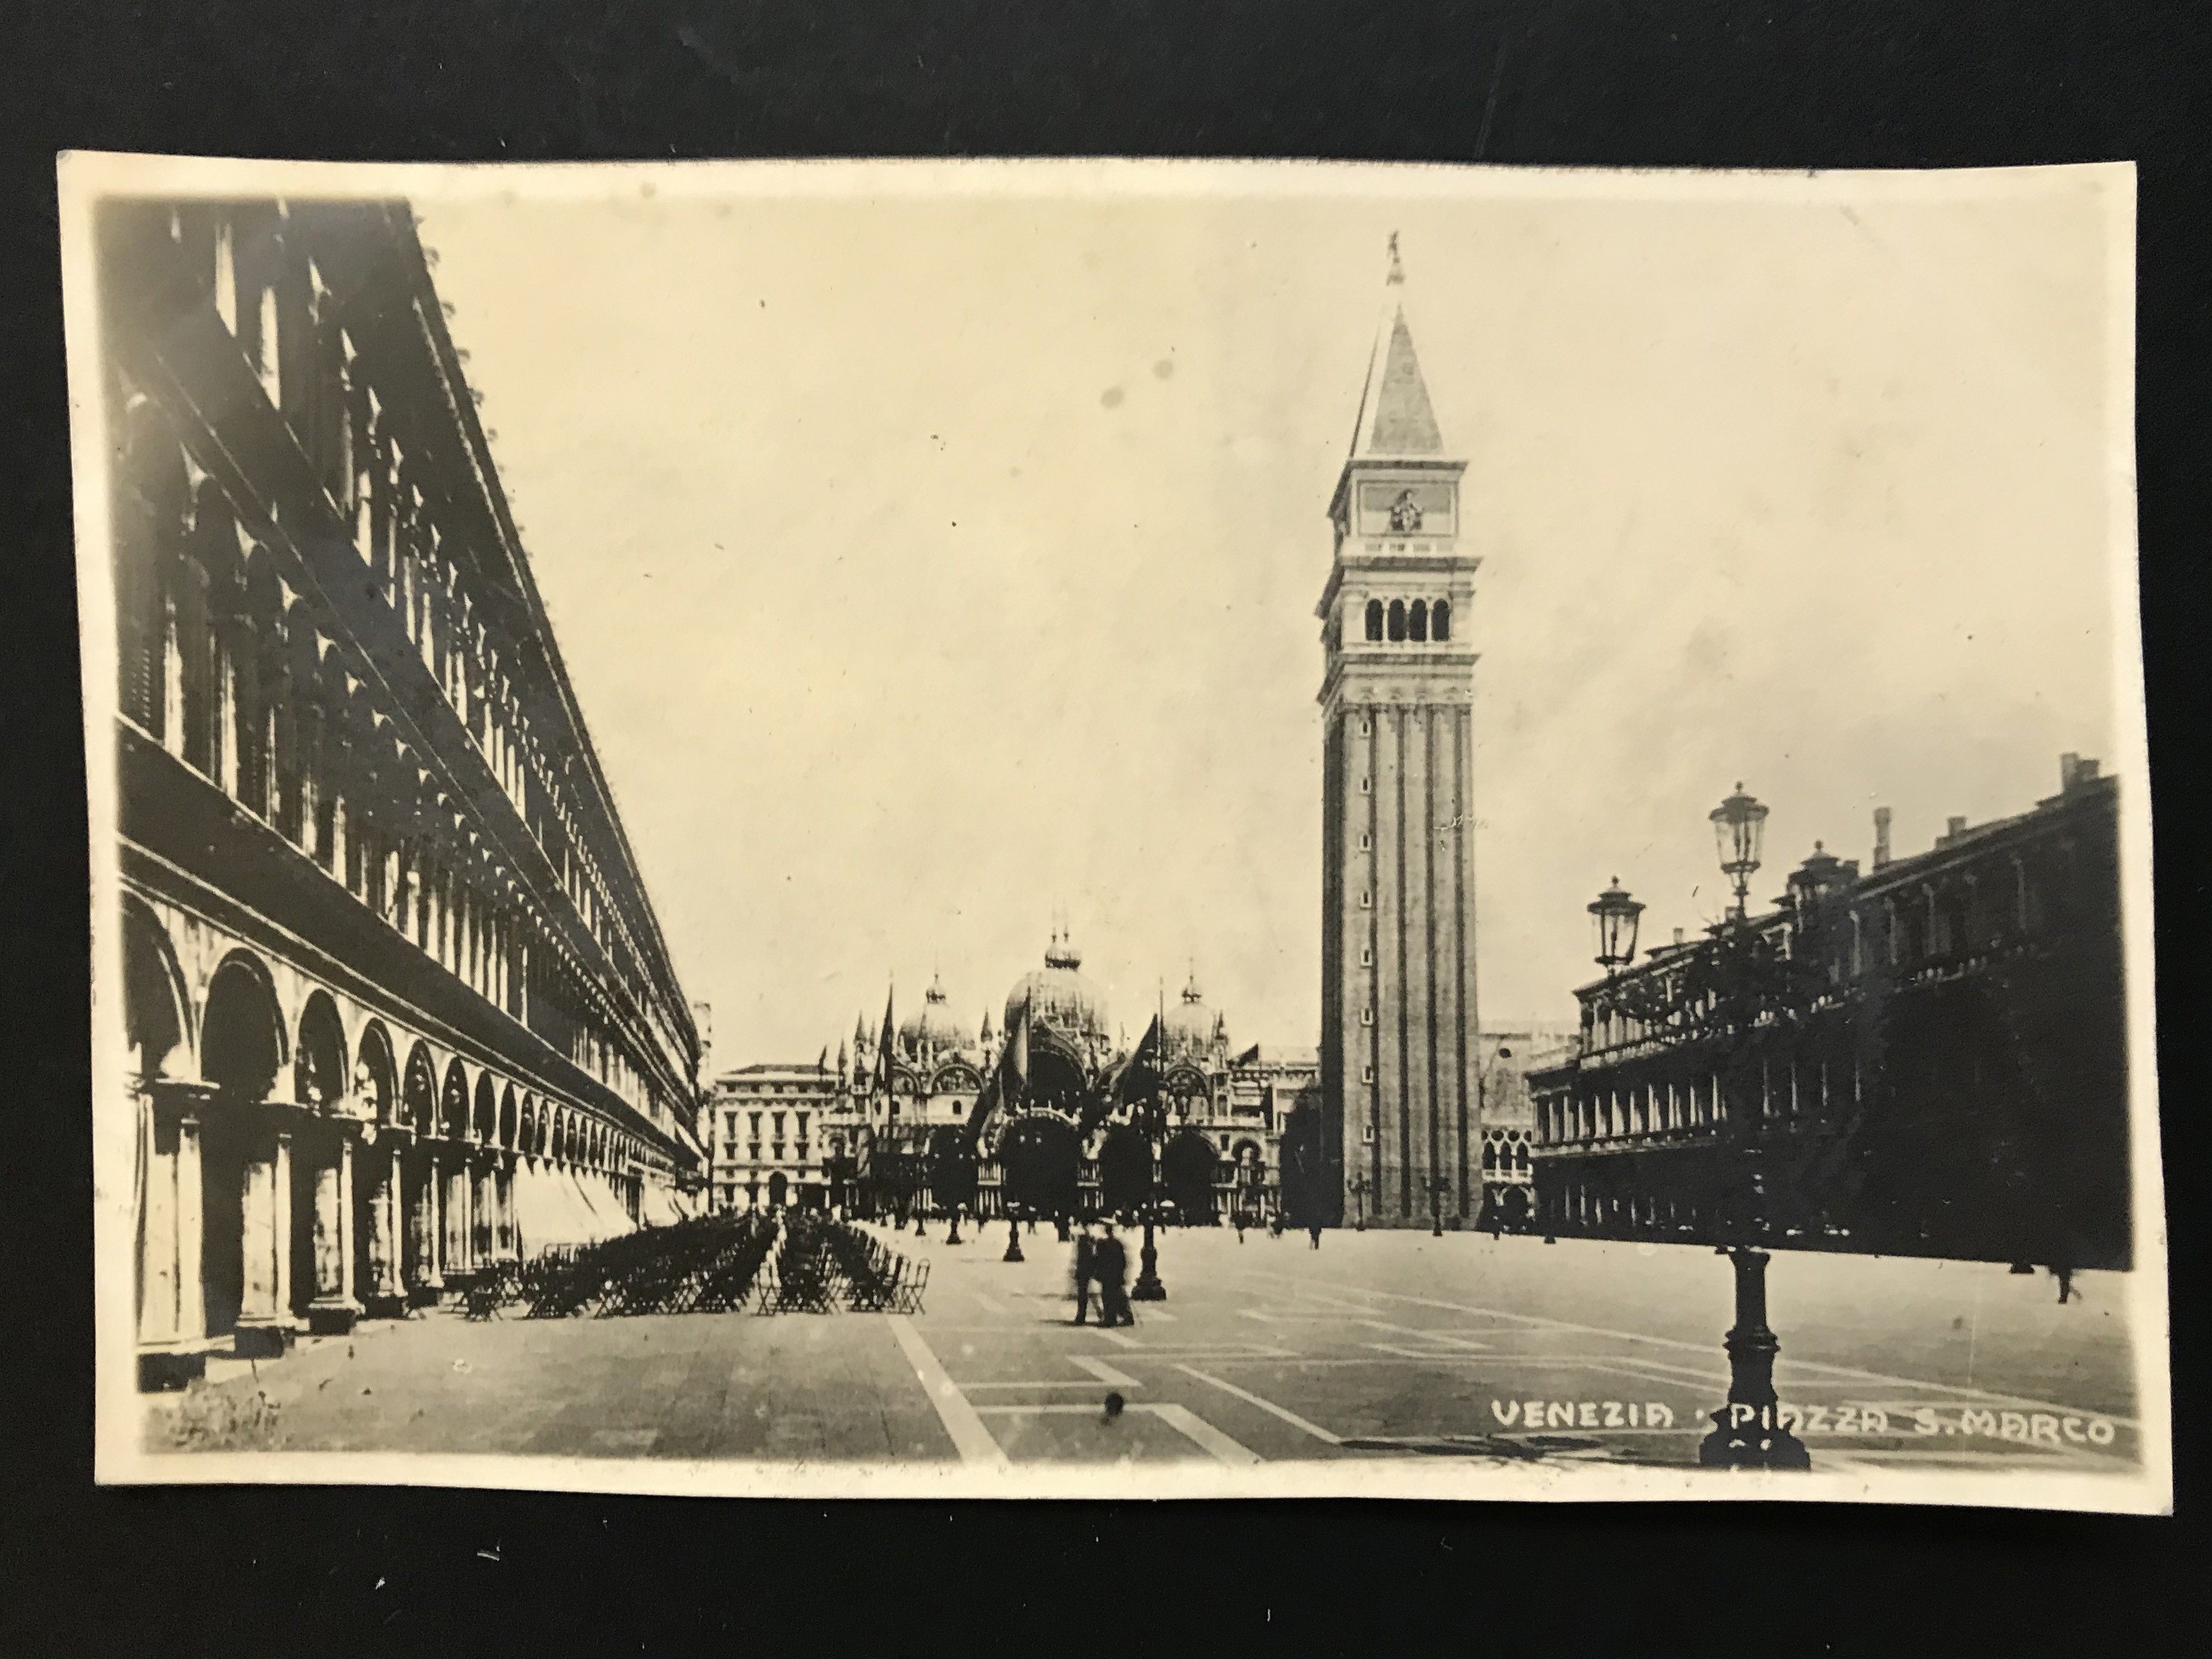 SELECTION OF VENICE RELATED POSTCARDS - Image 32 of 53